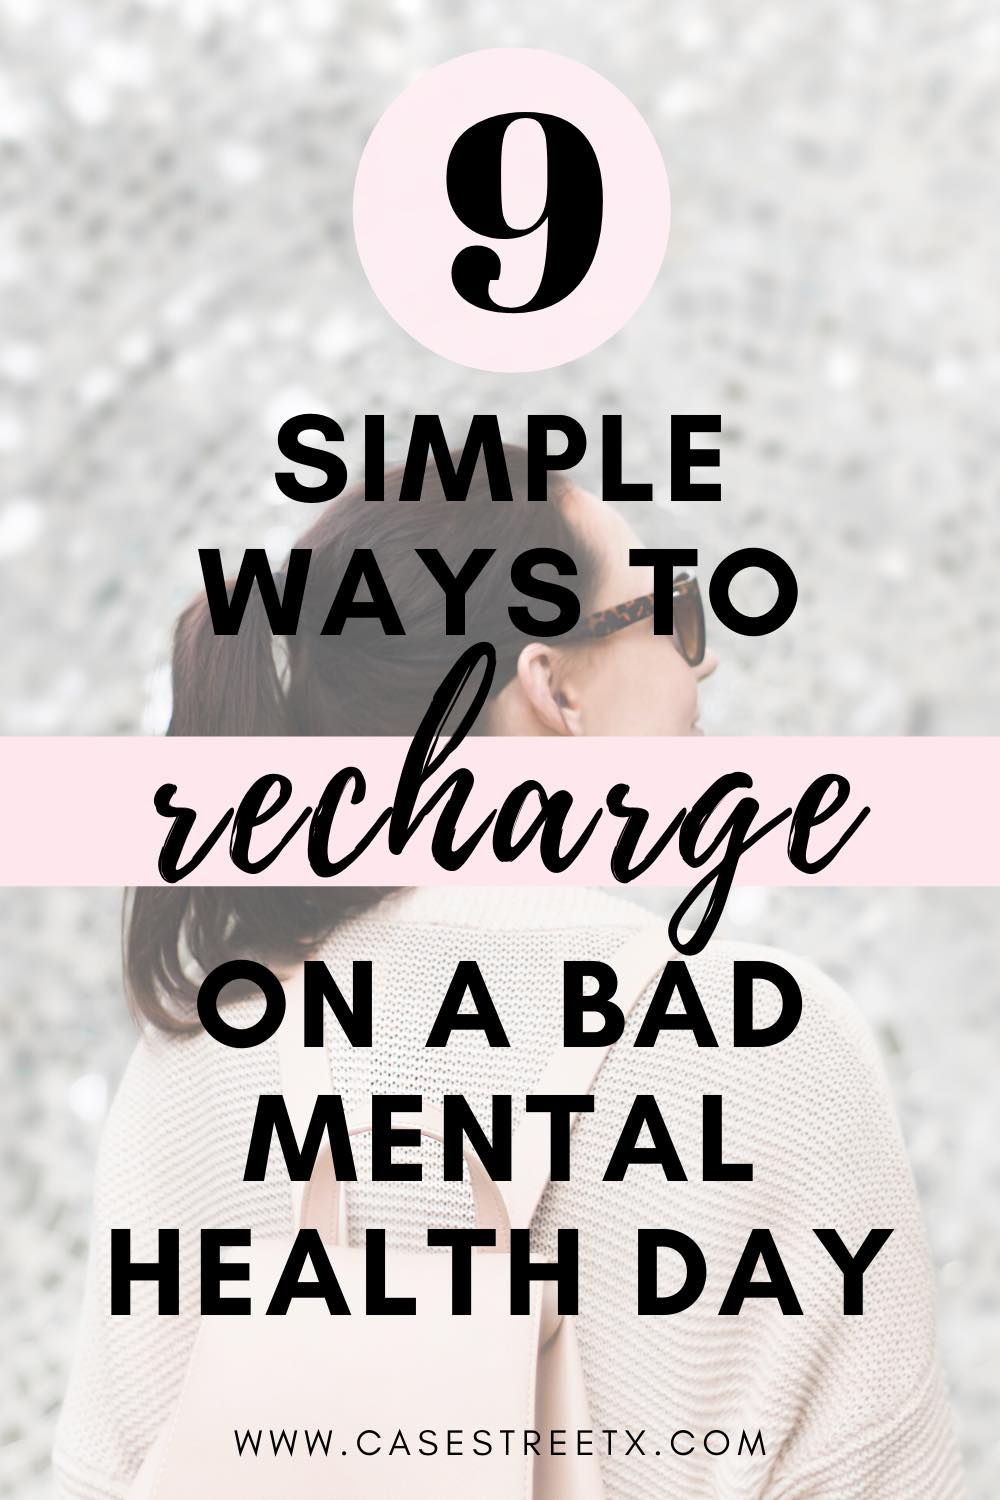 9 Simple ways to recharge on a bad mental health day.